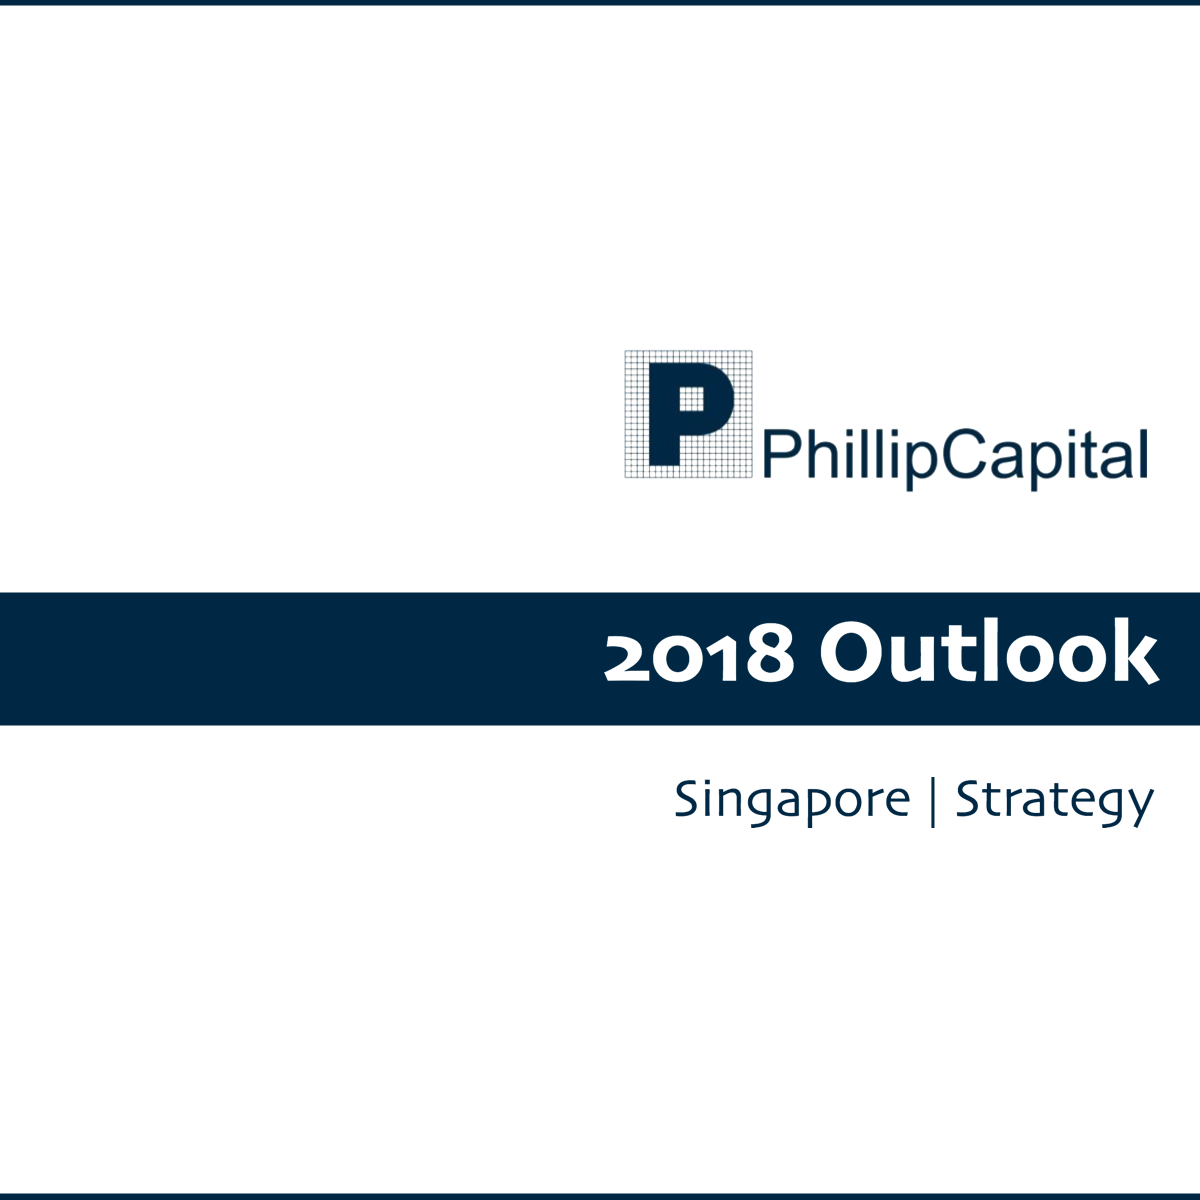 Phillip Singapore Monthly - Phillip Securities Research 2018-08-23: August 2018 ~ Global Growth Has Peaked